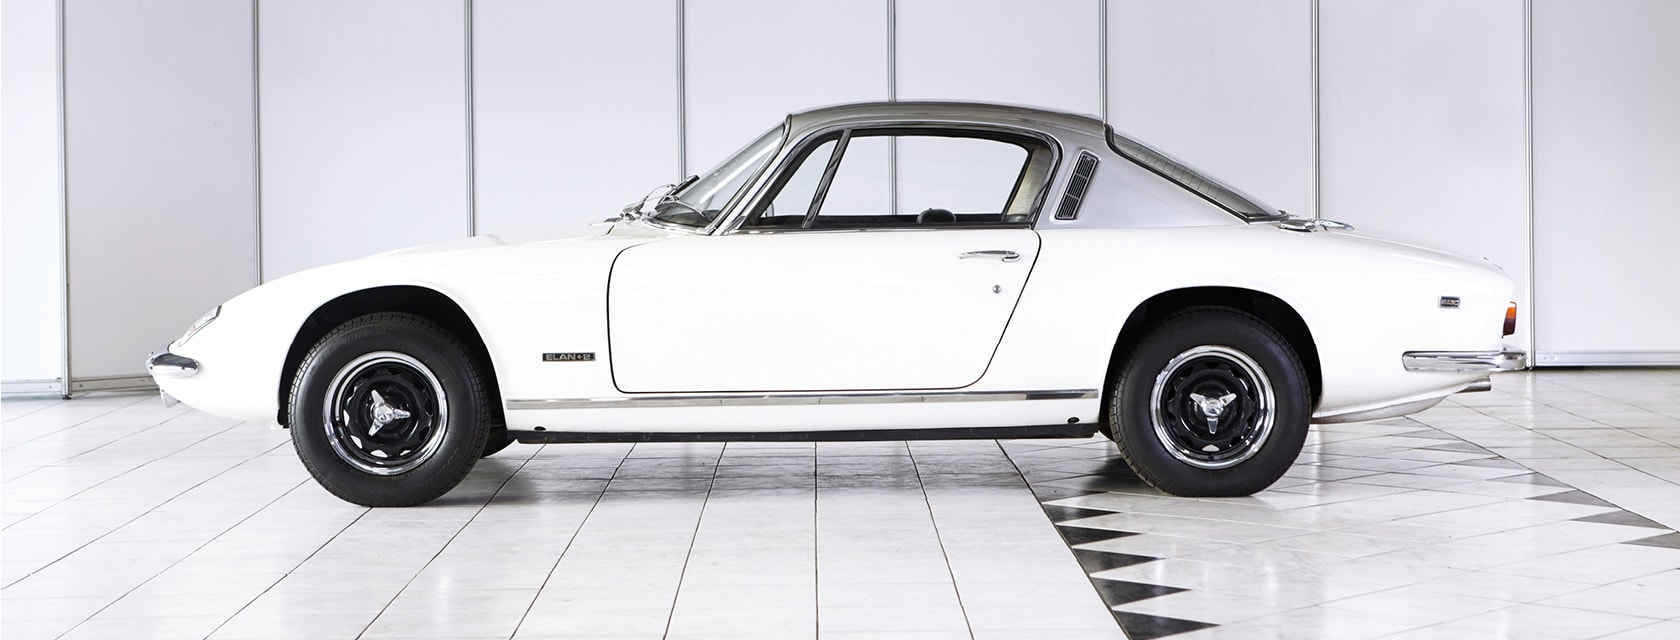 classic classics classic cars for sale online uk based. Cars Review. Best American Auto & Cars Review